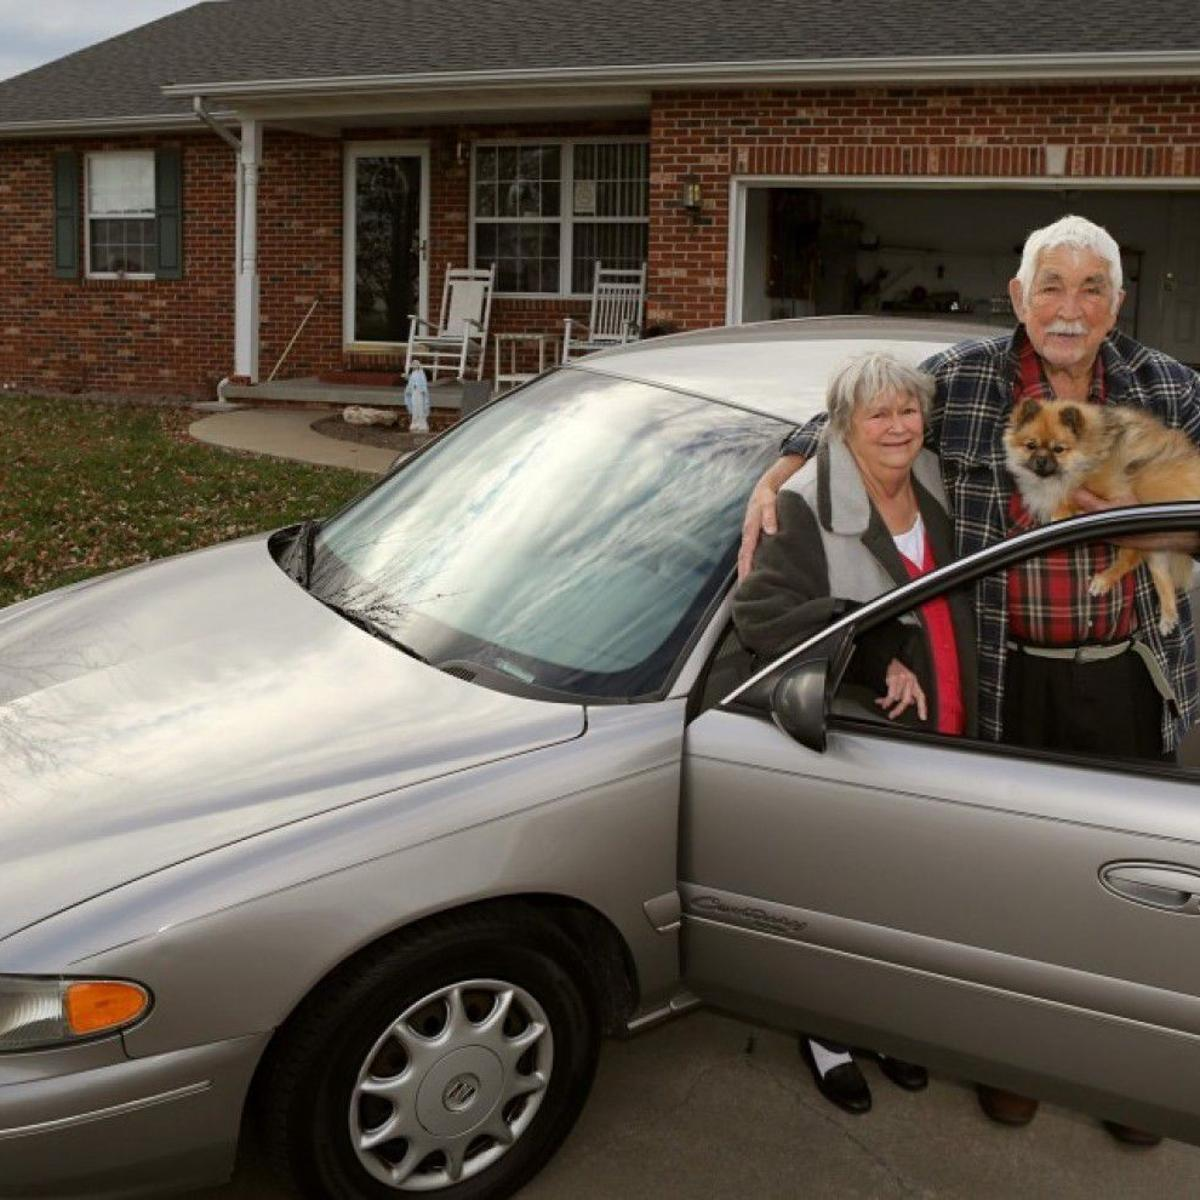 A repo man didn't want to seize an elderly couple's car  So